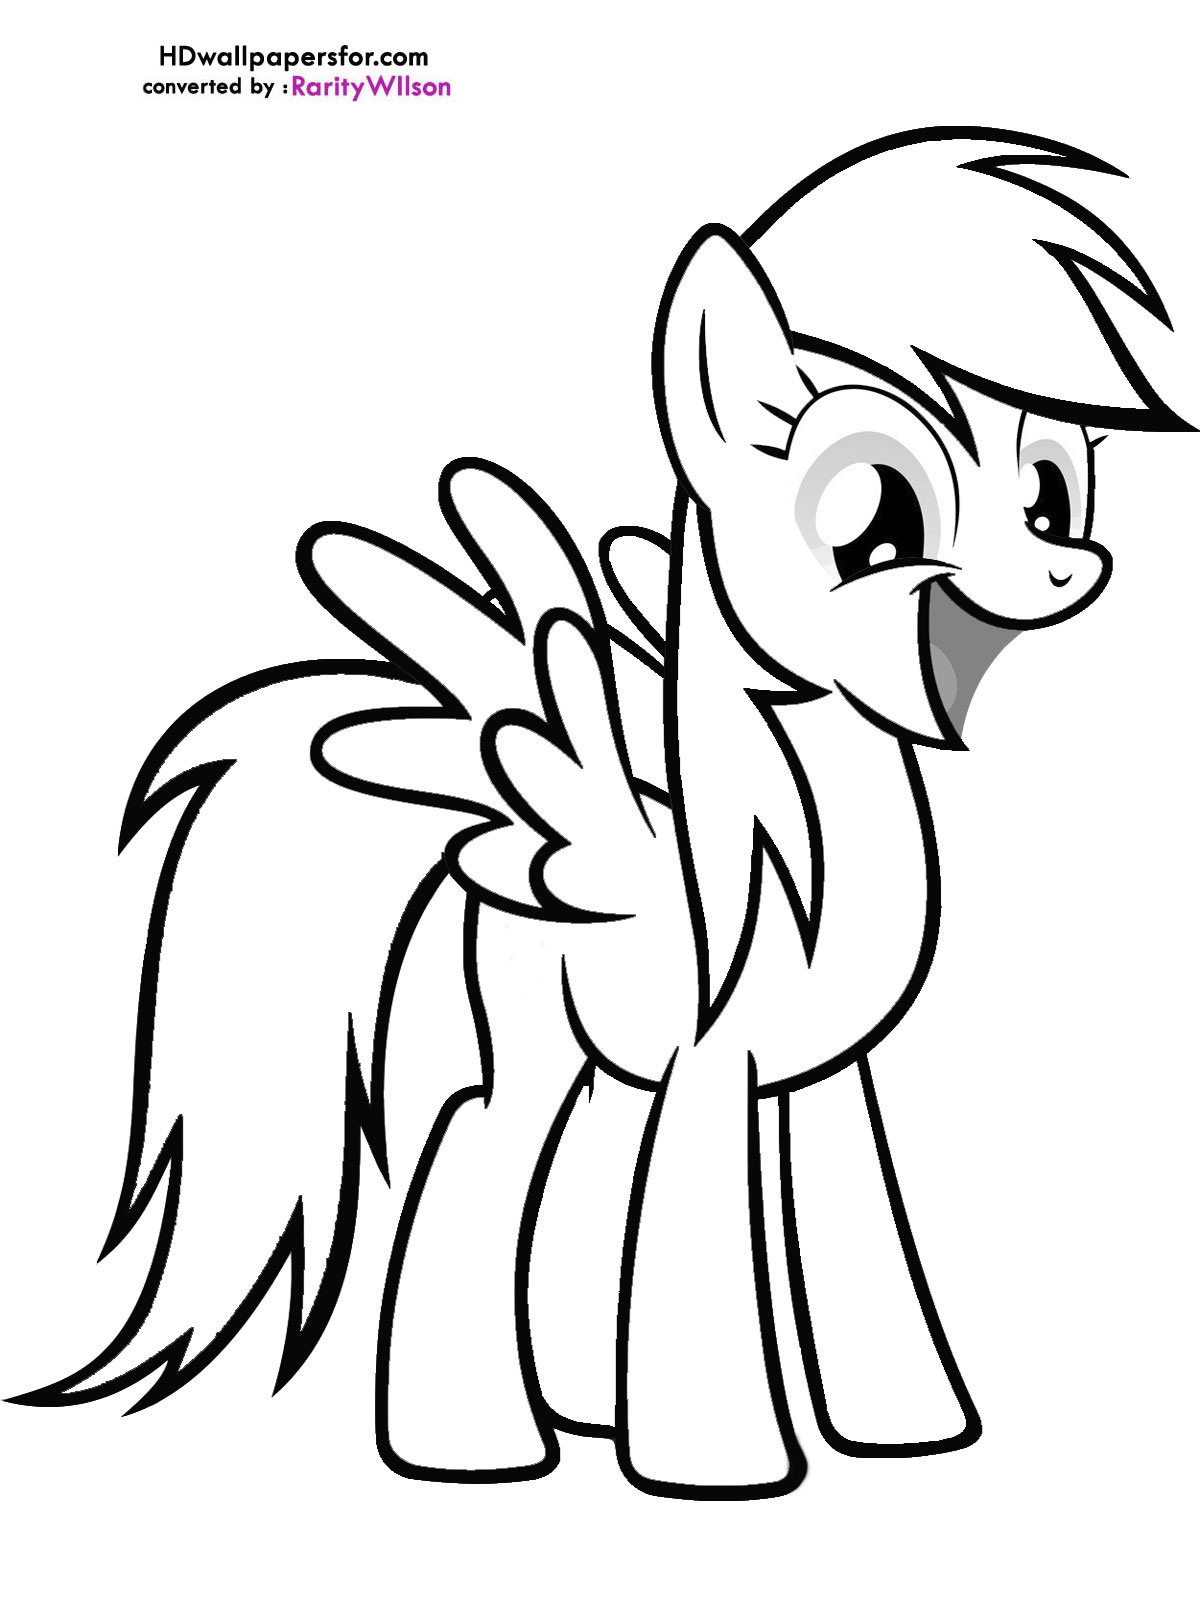 my little pony friendship is magic colouring pictures to print my little pony coloring pages friendship is magic magic my to little print is pictures colouring pony friendship